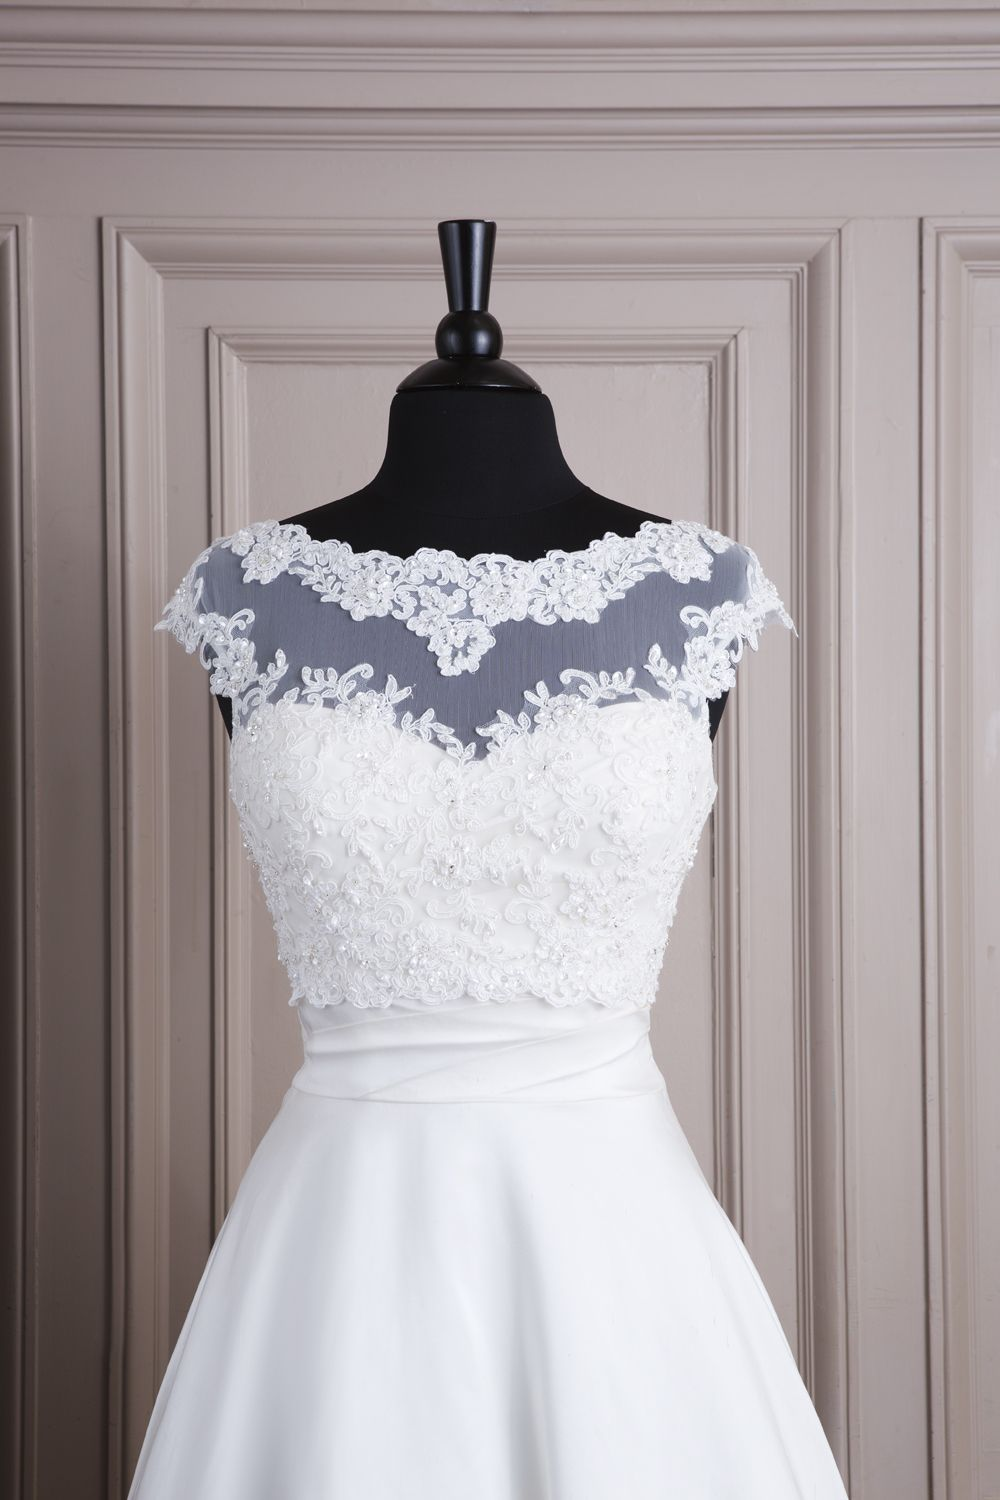 6830f73f05b Justin Alexander wedding accessories style A061 Lace and tulle jacket with  bateau neckline